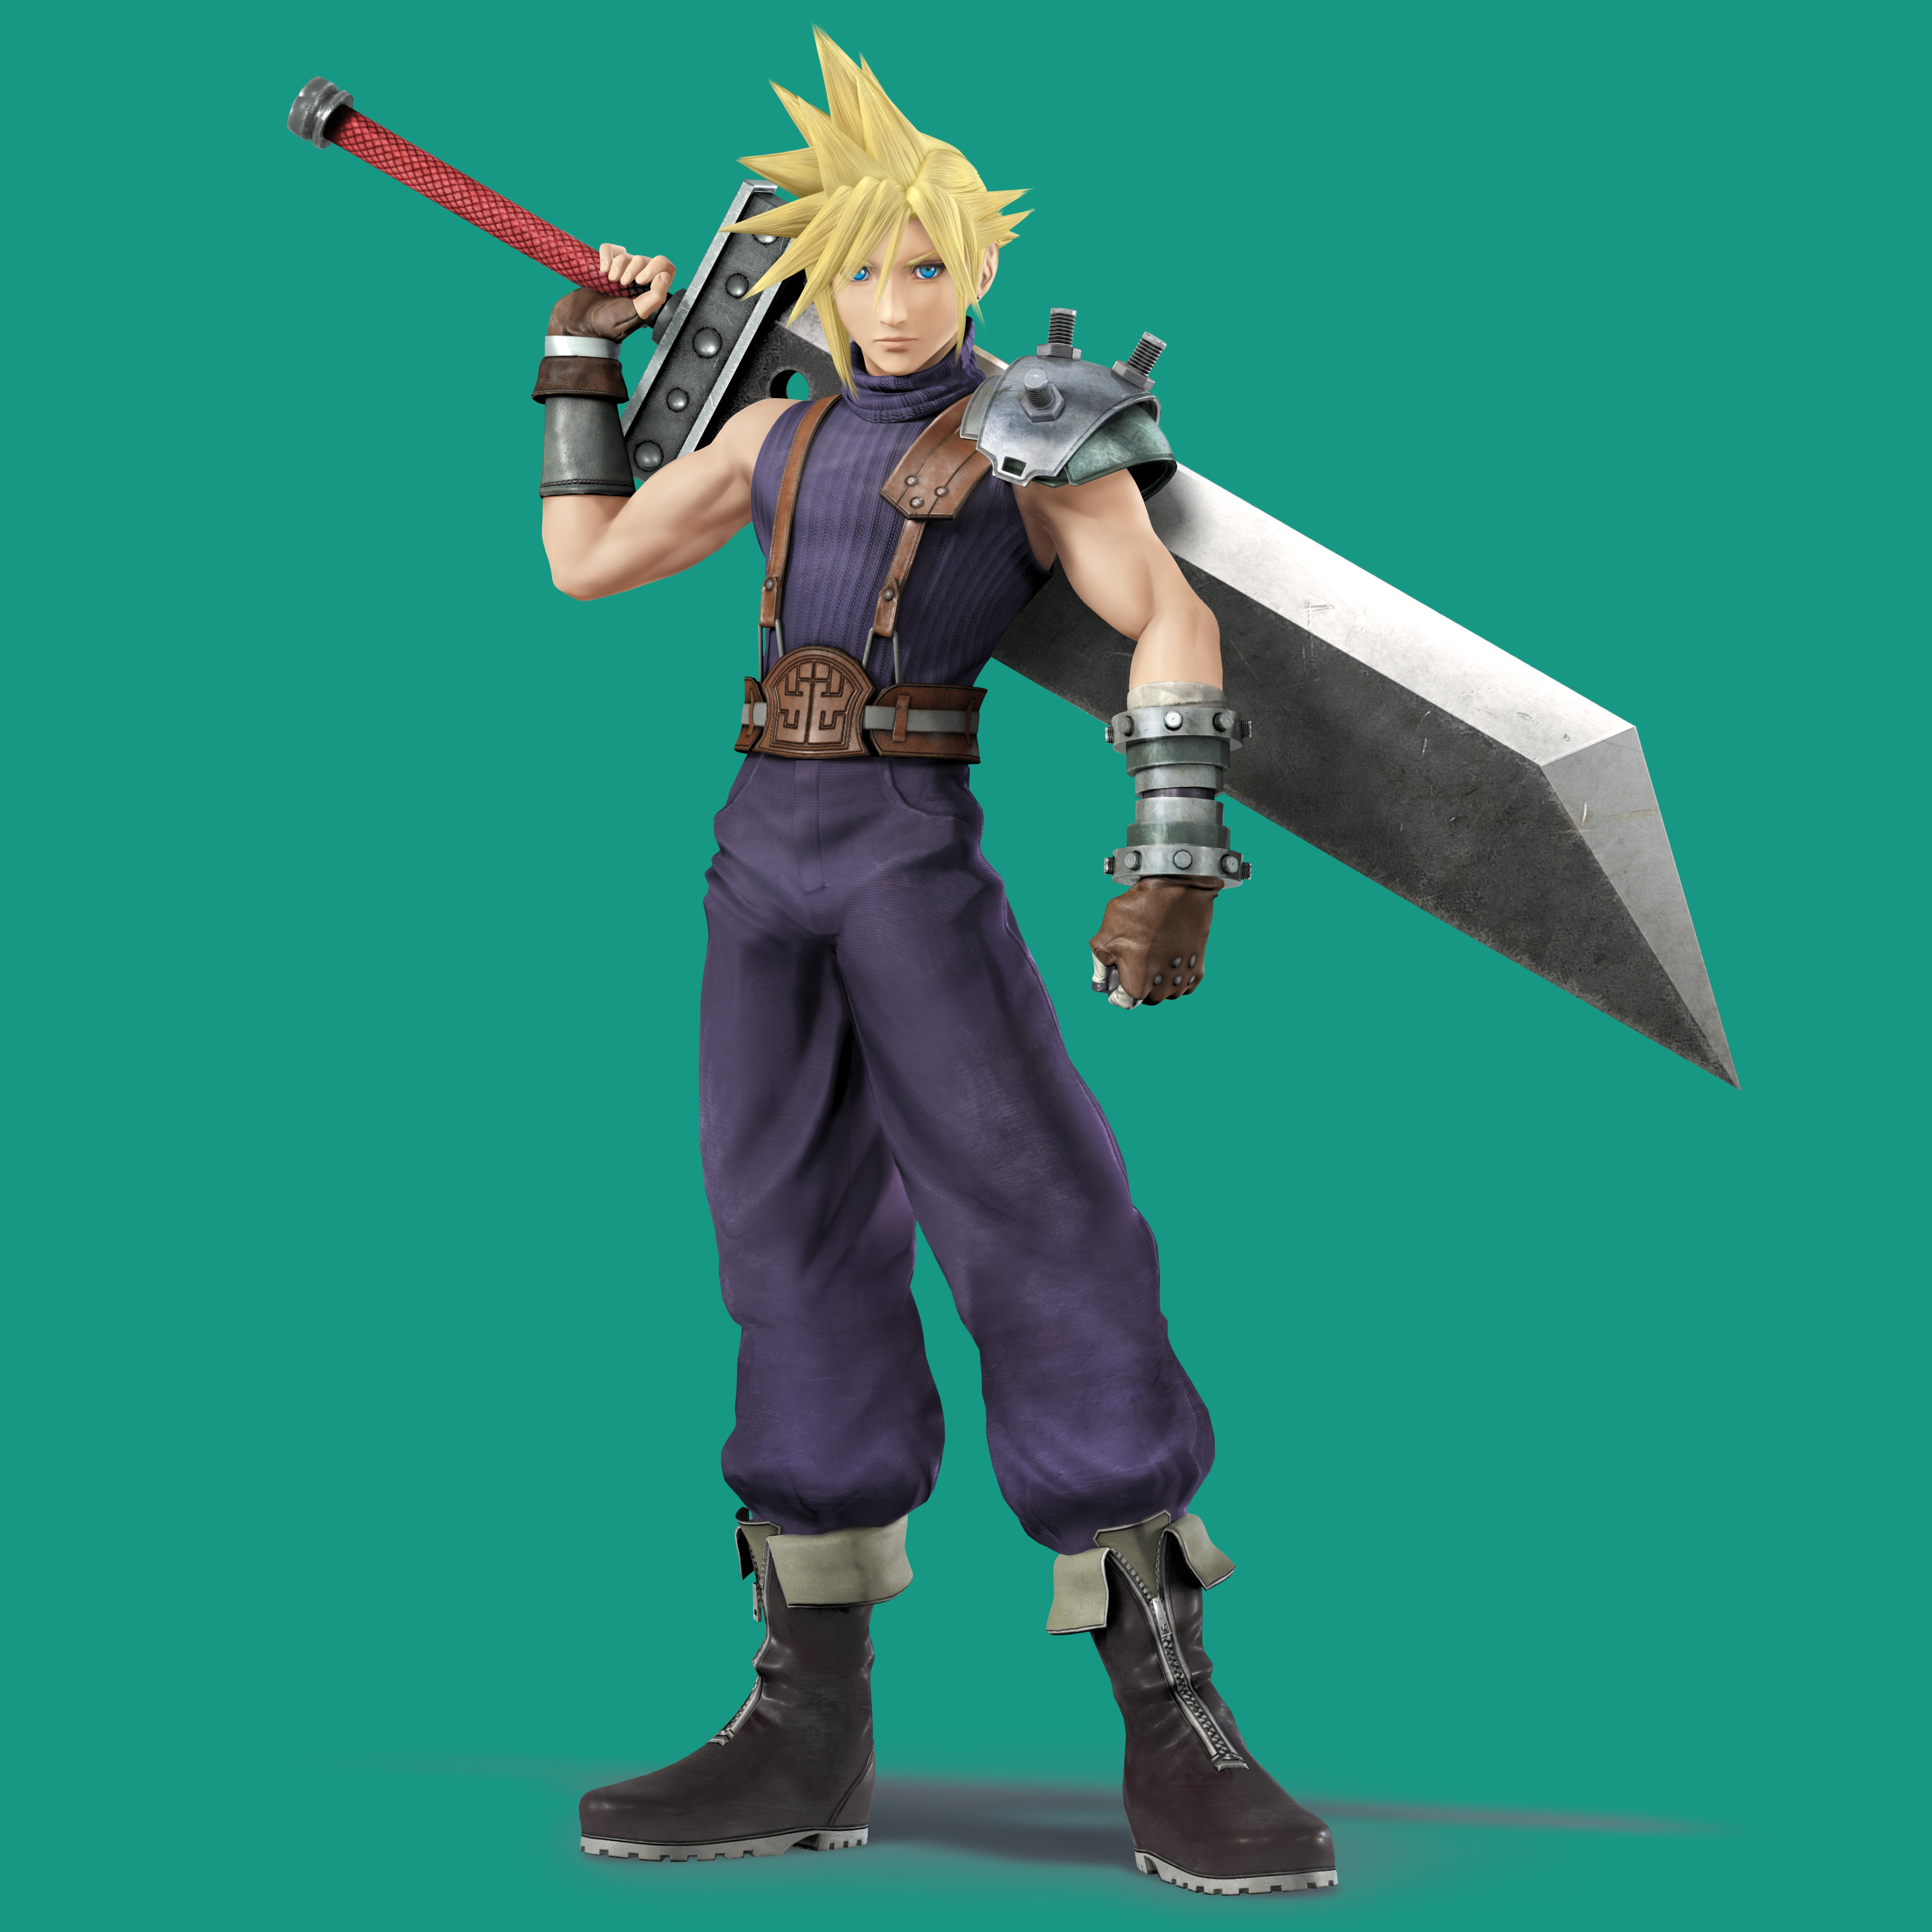 Final Fantasy Vii S Cloud Is Coming To Super Smash Bros